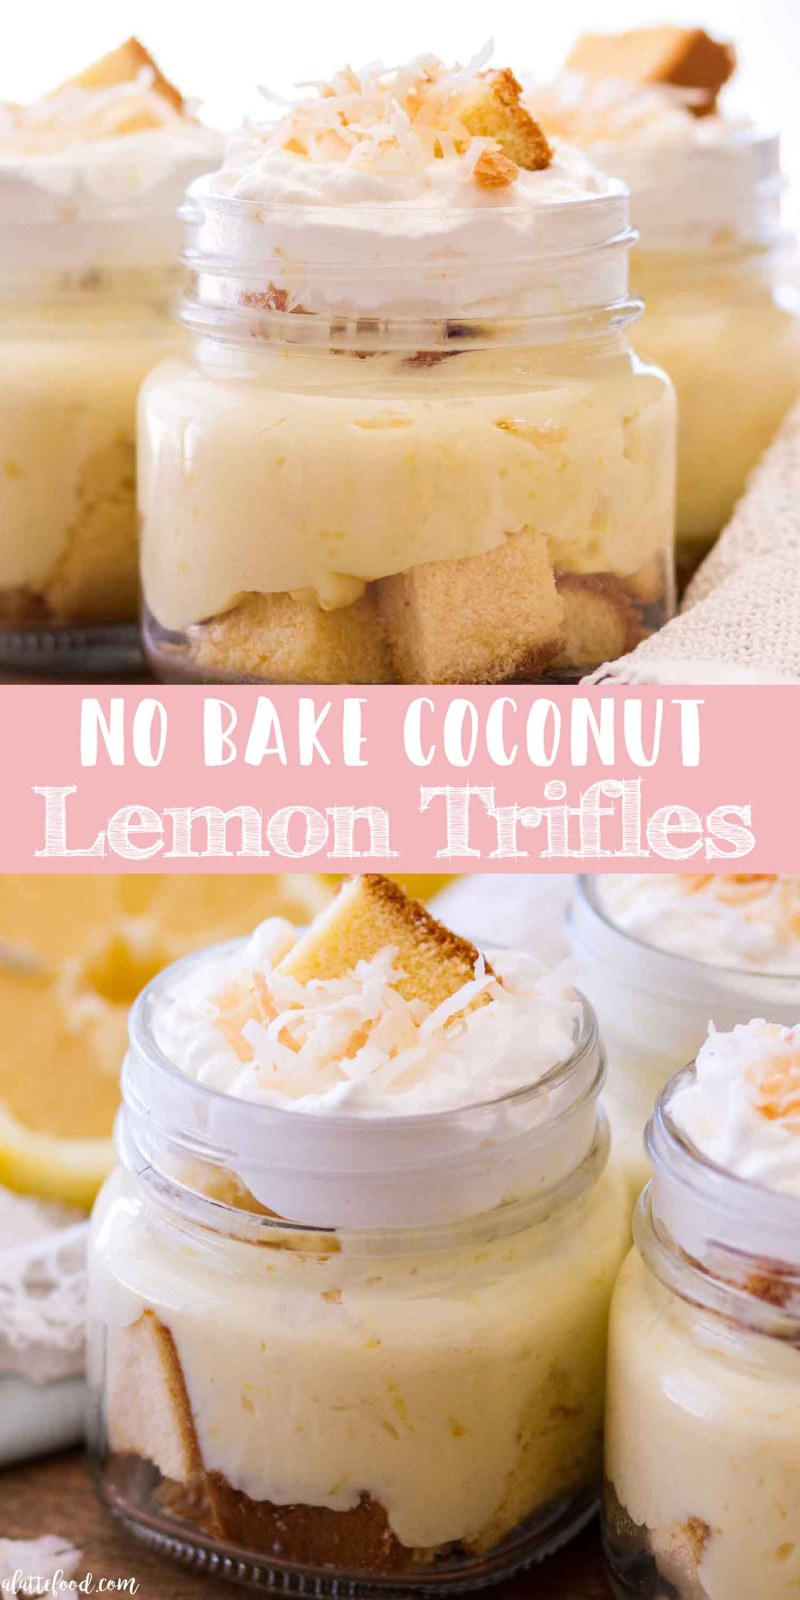 no bake coconut lemon trifles collage with text